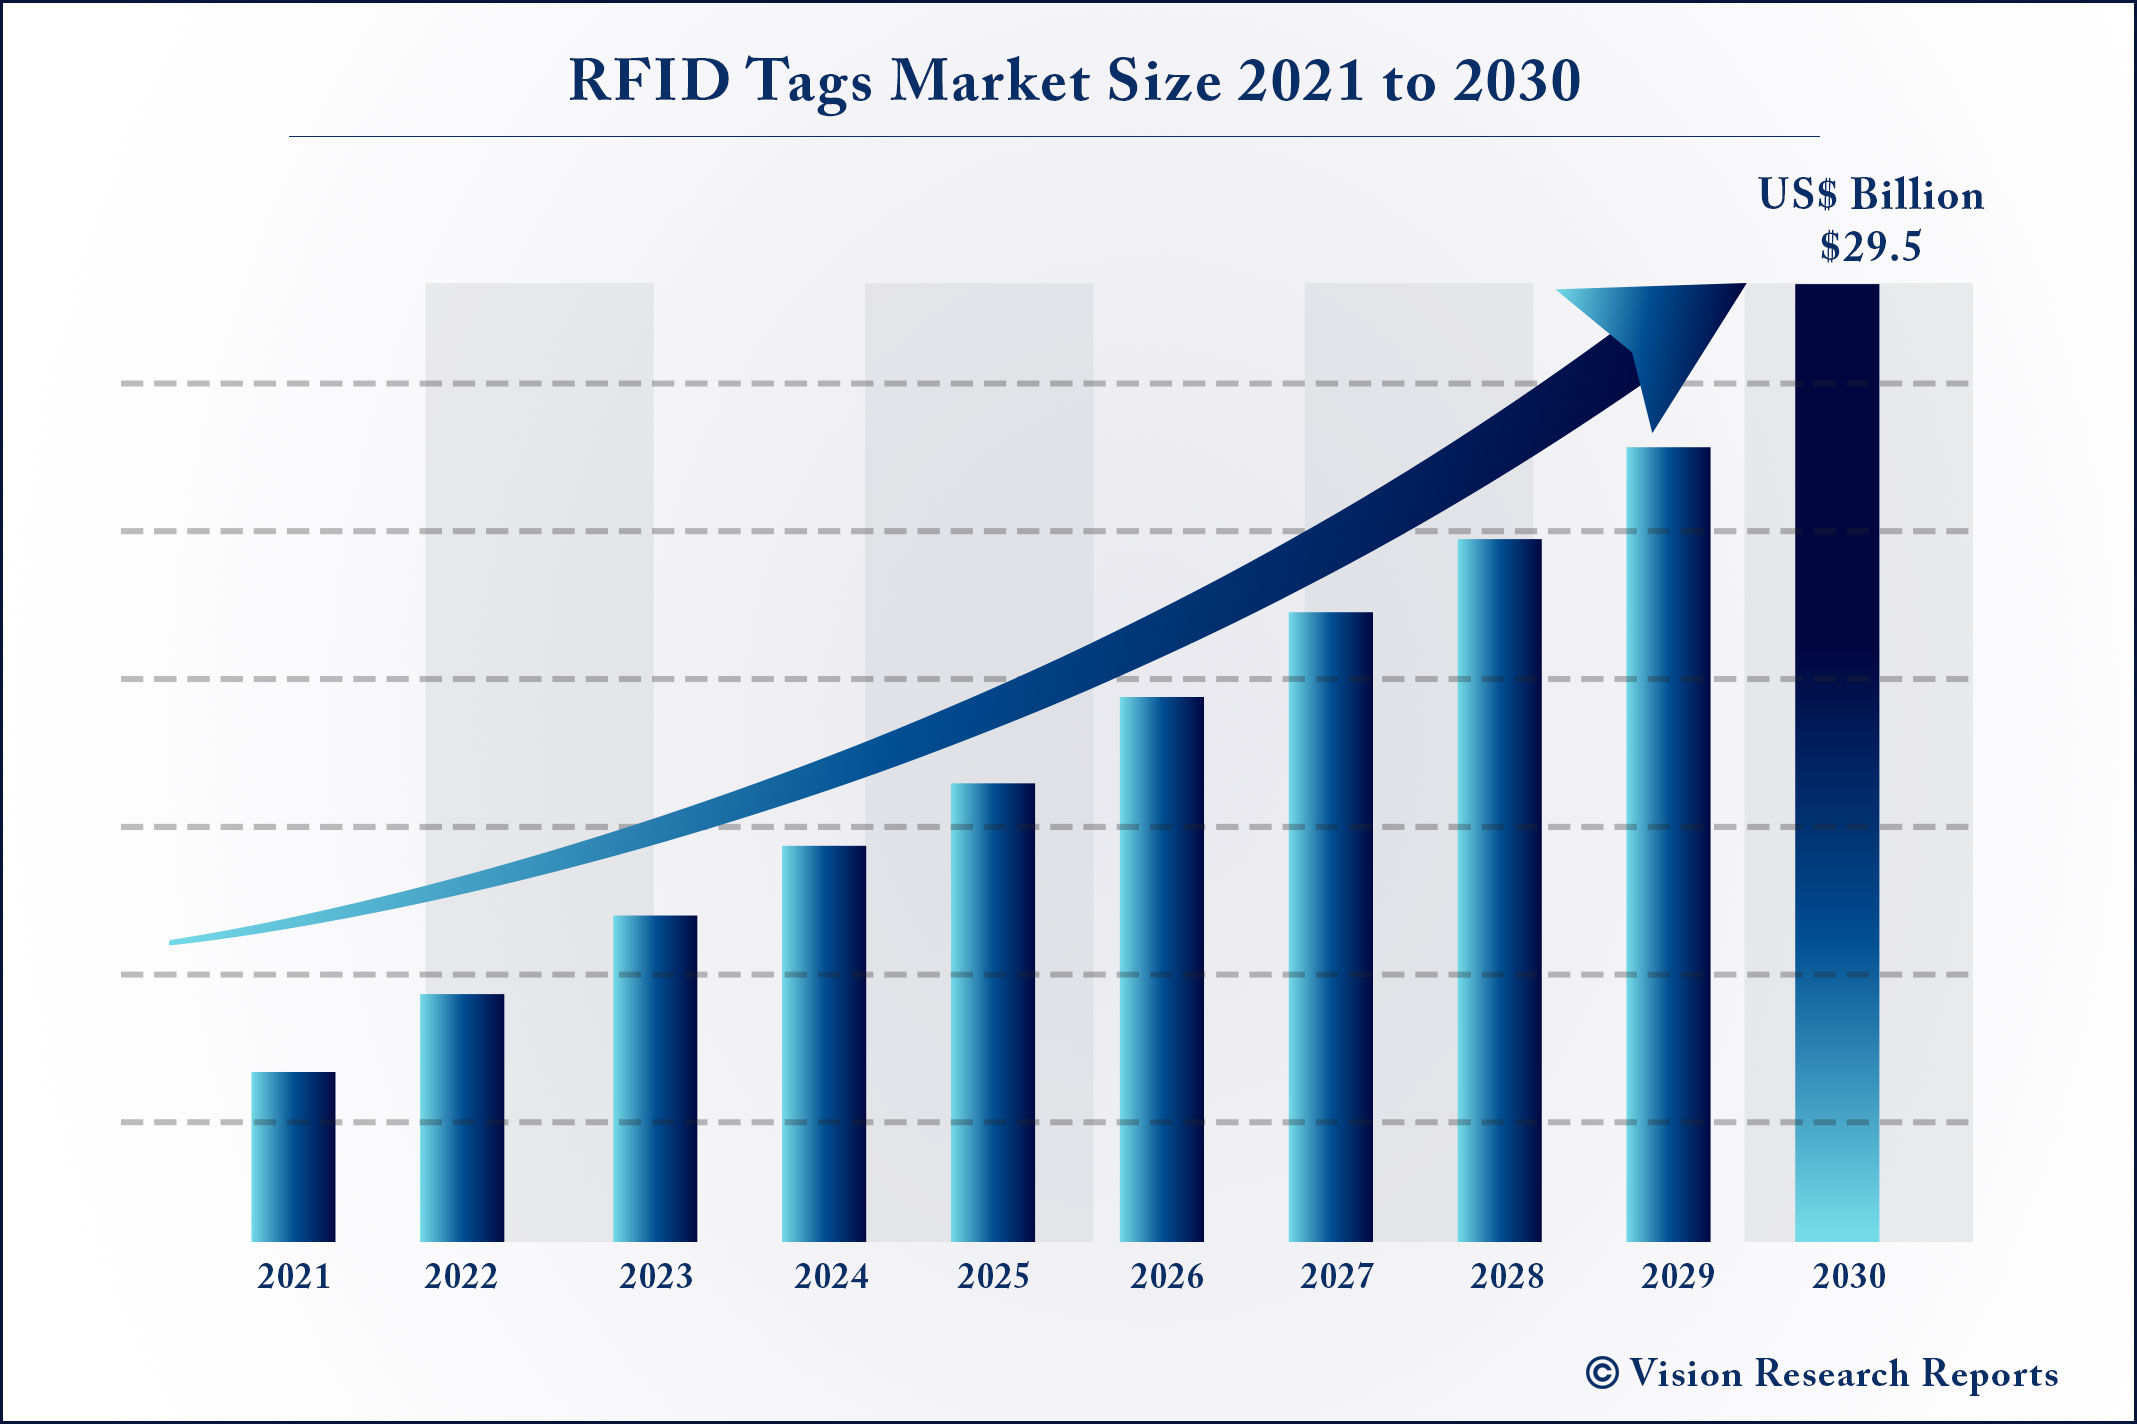 RFID Tags Market Size 2021 to 2030